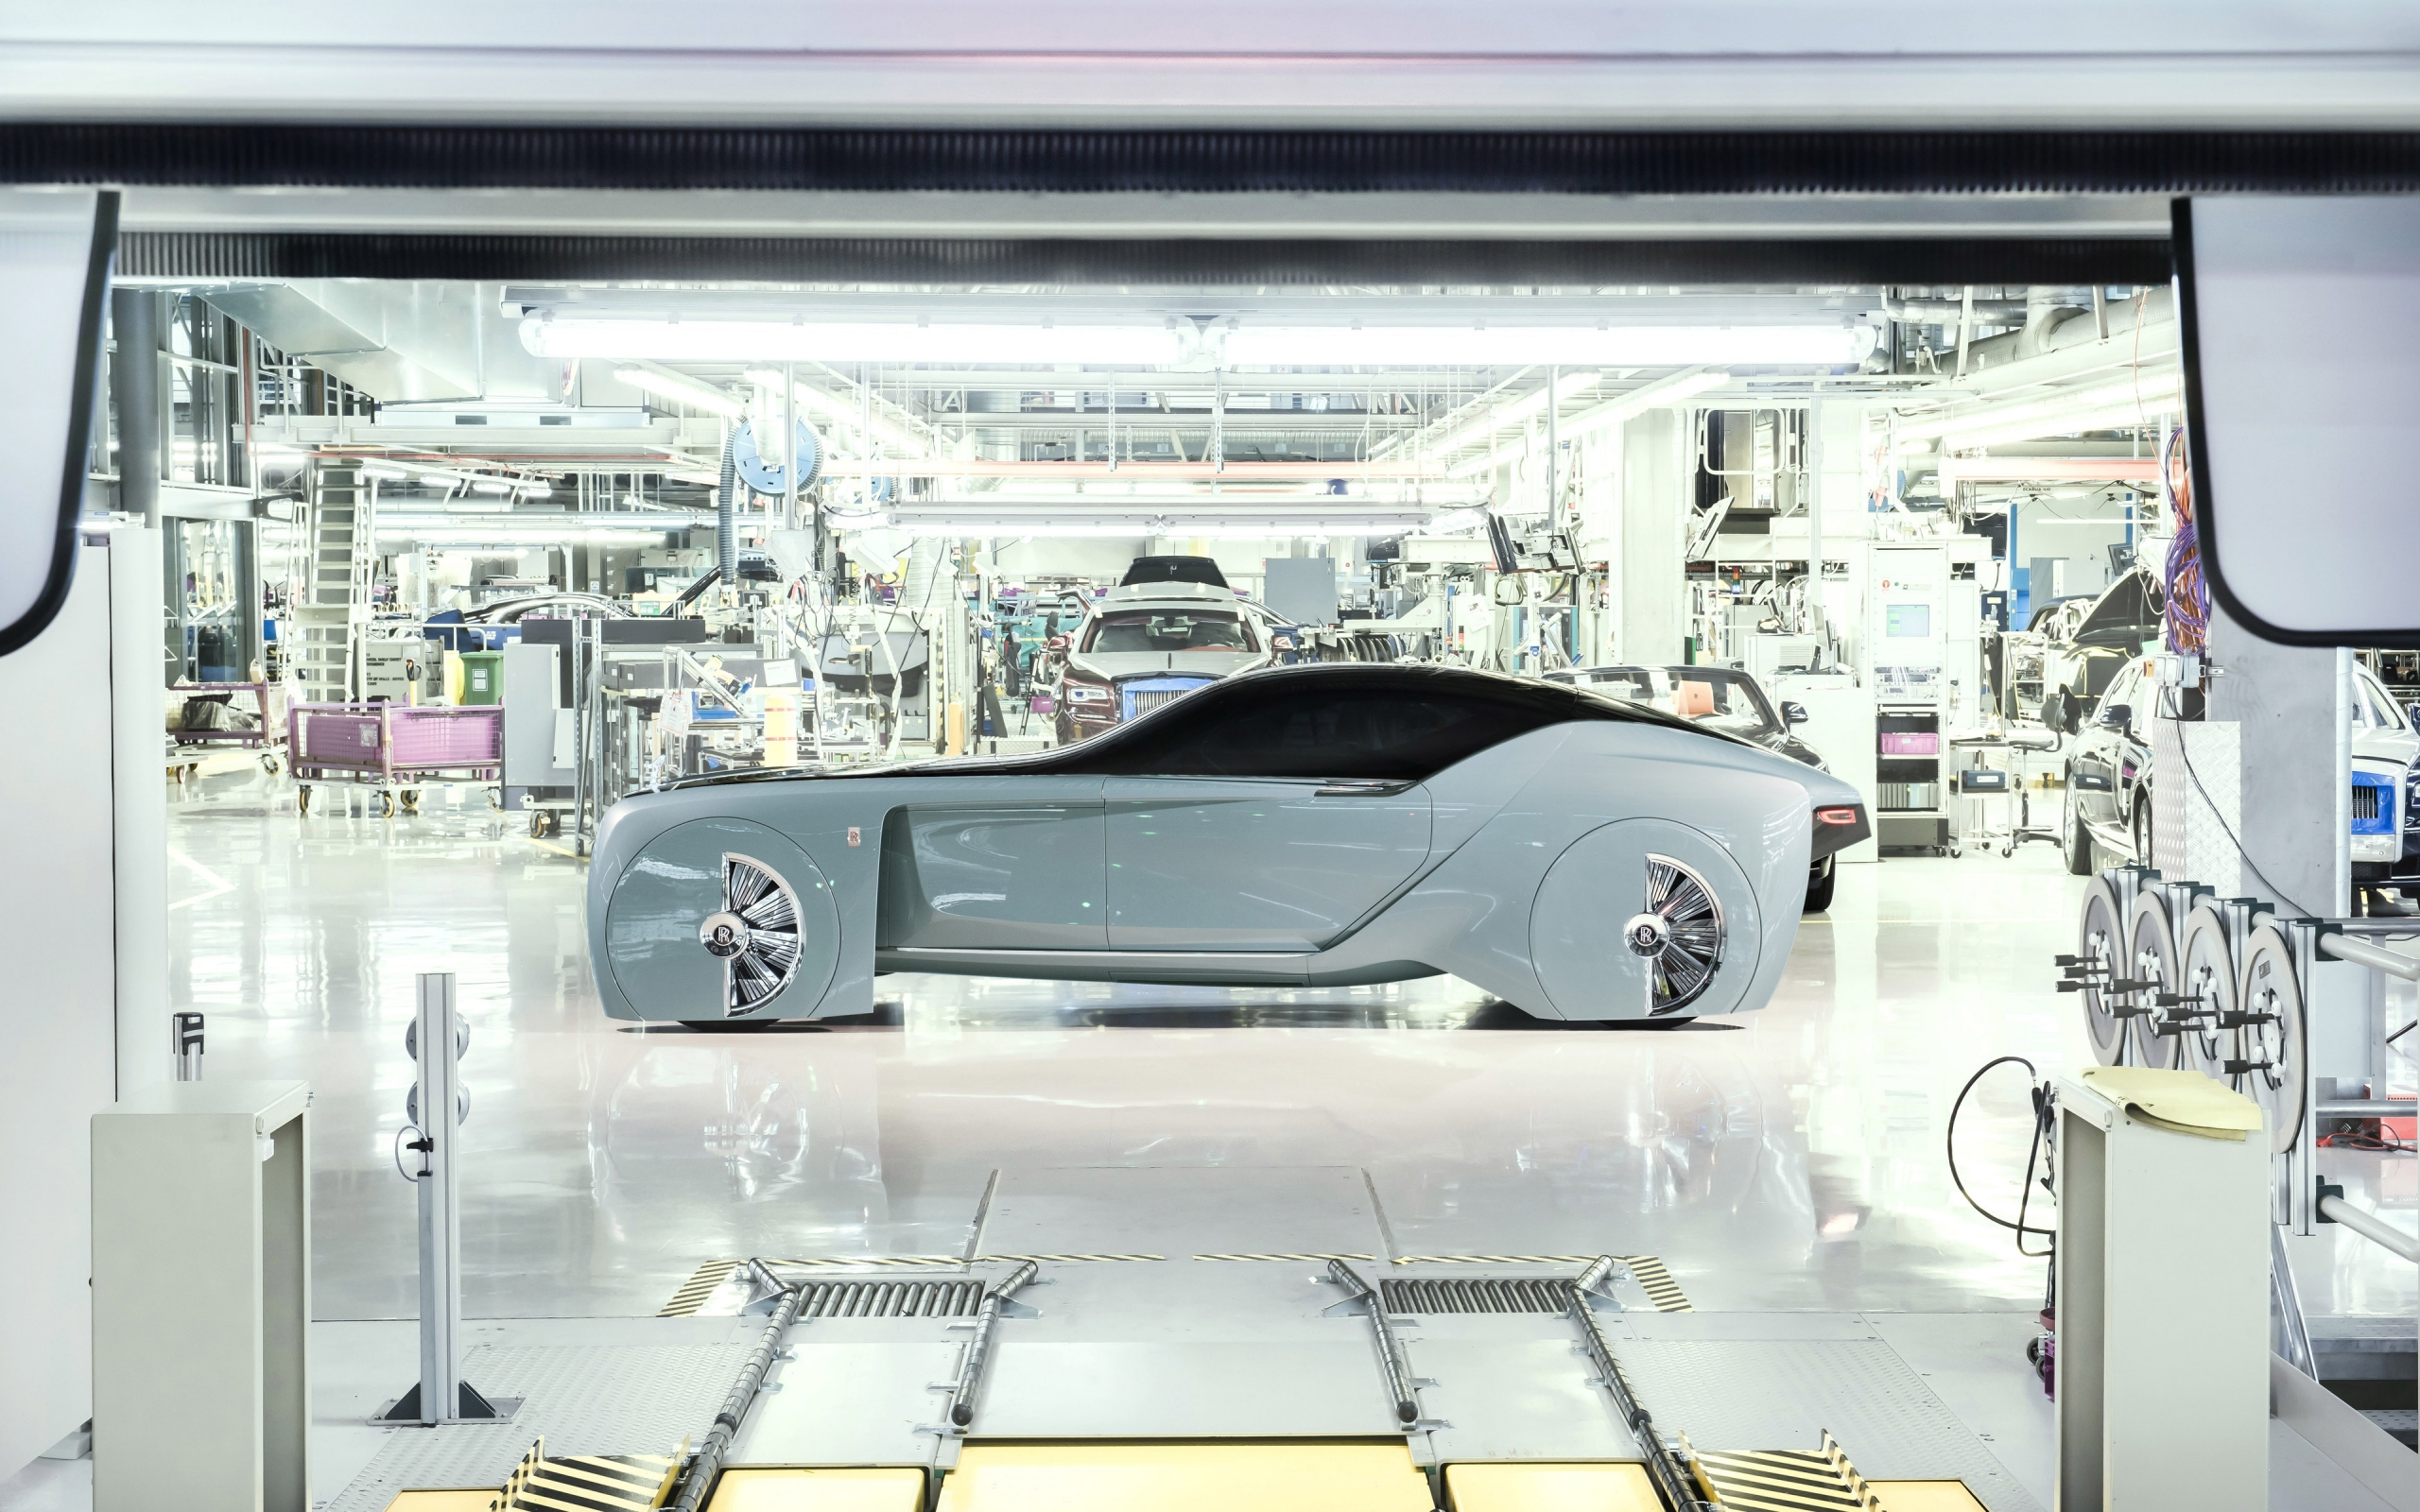 Rolls-Royce Vision Next 100 Concept 2016 - Photo 06 - Taille: 2560x1600